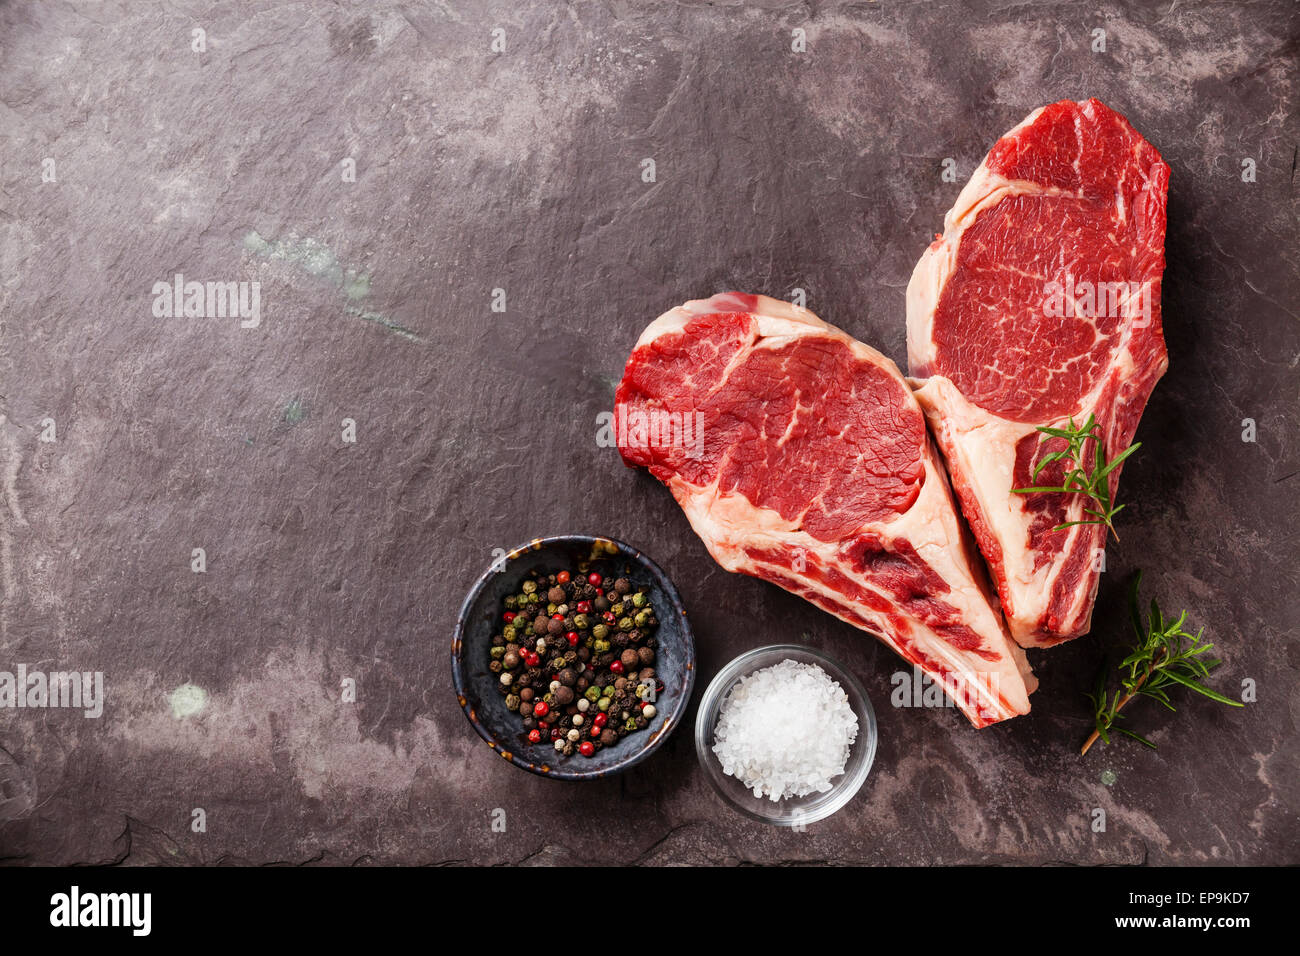 Heart shape Raw fresh meat Ribeye Steak with rosemary, pepper and salt on stone slate background - Stock Image